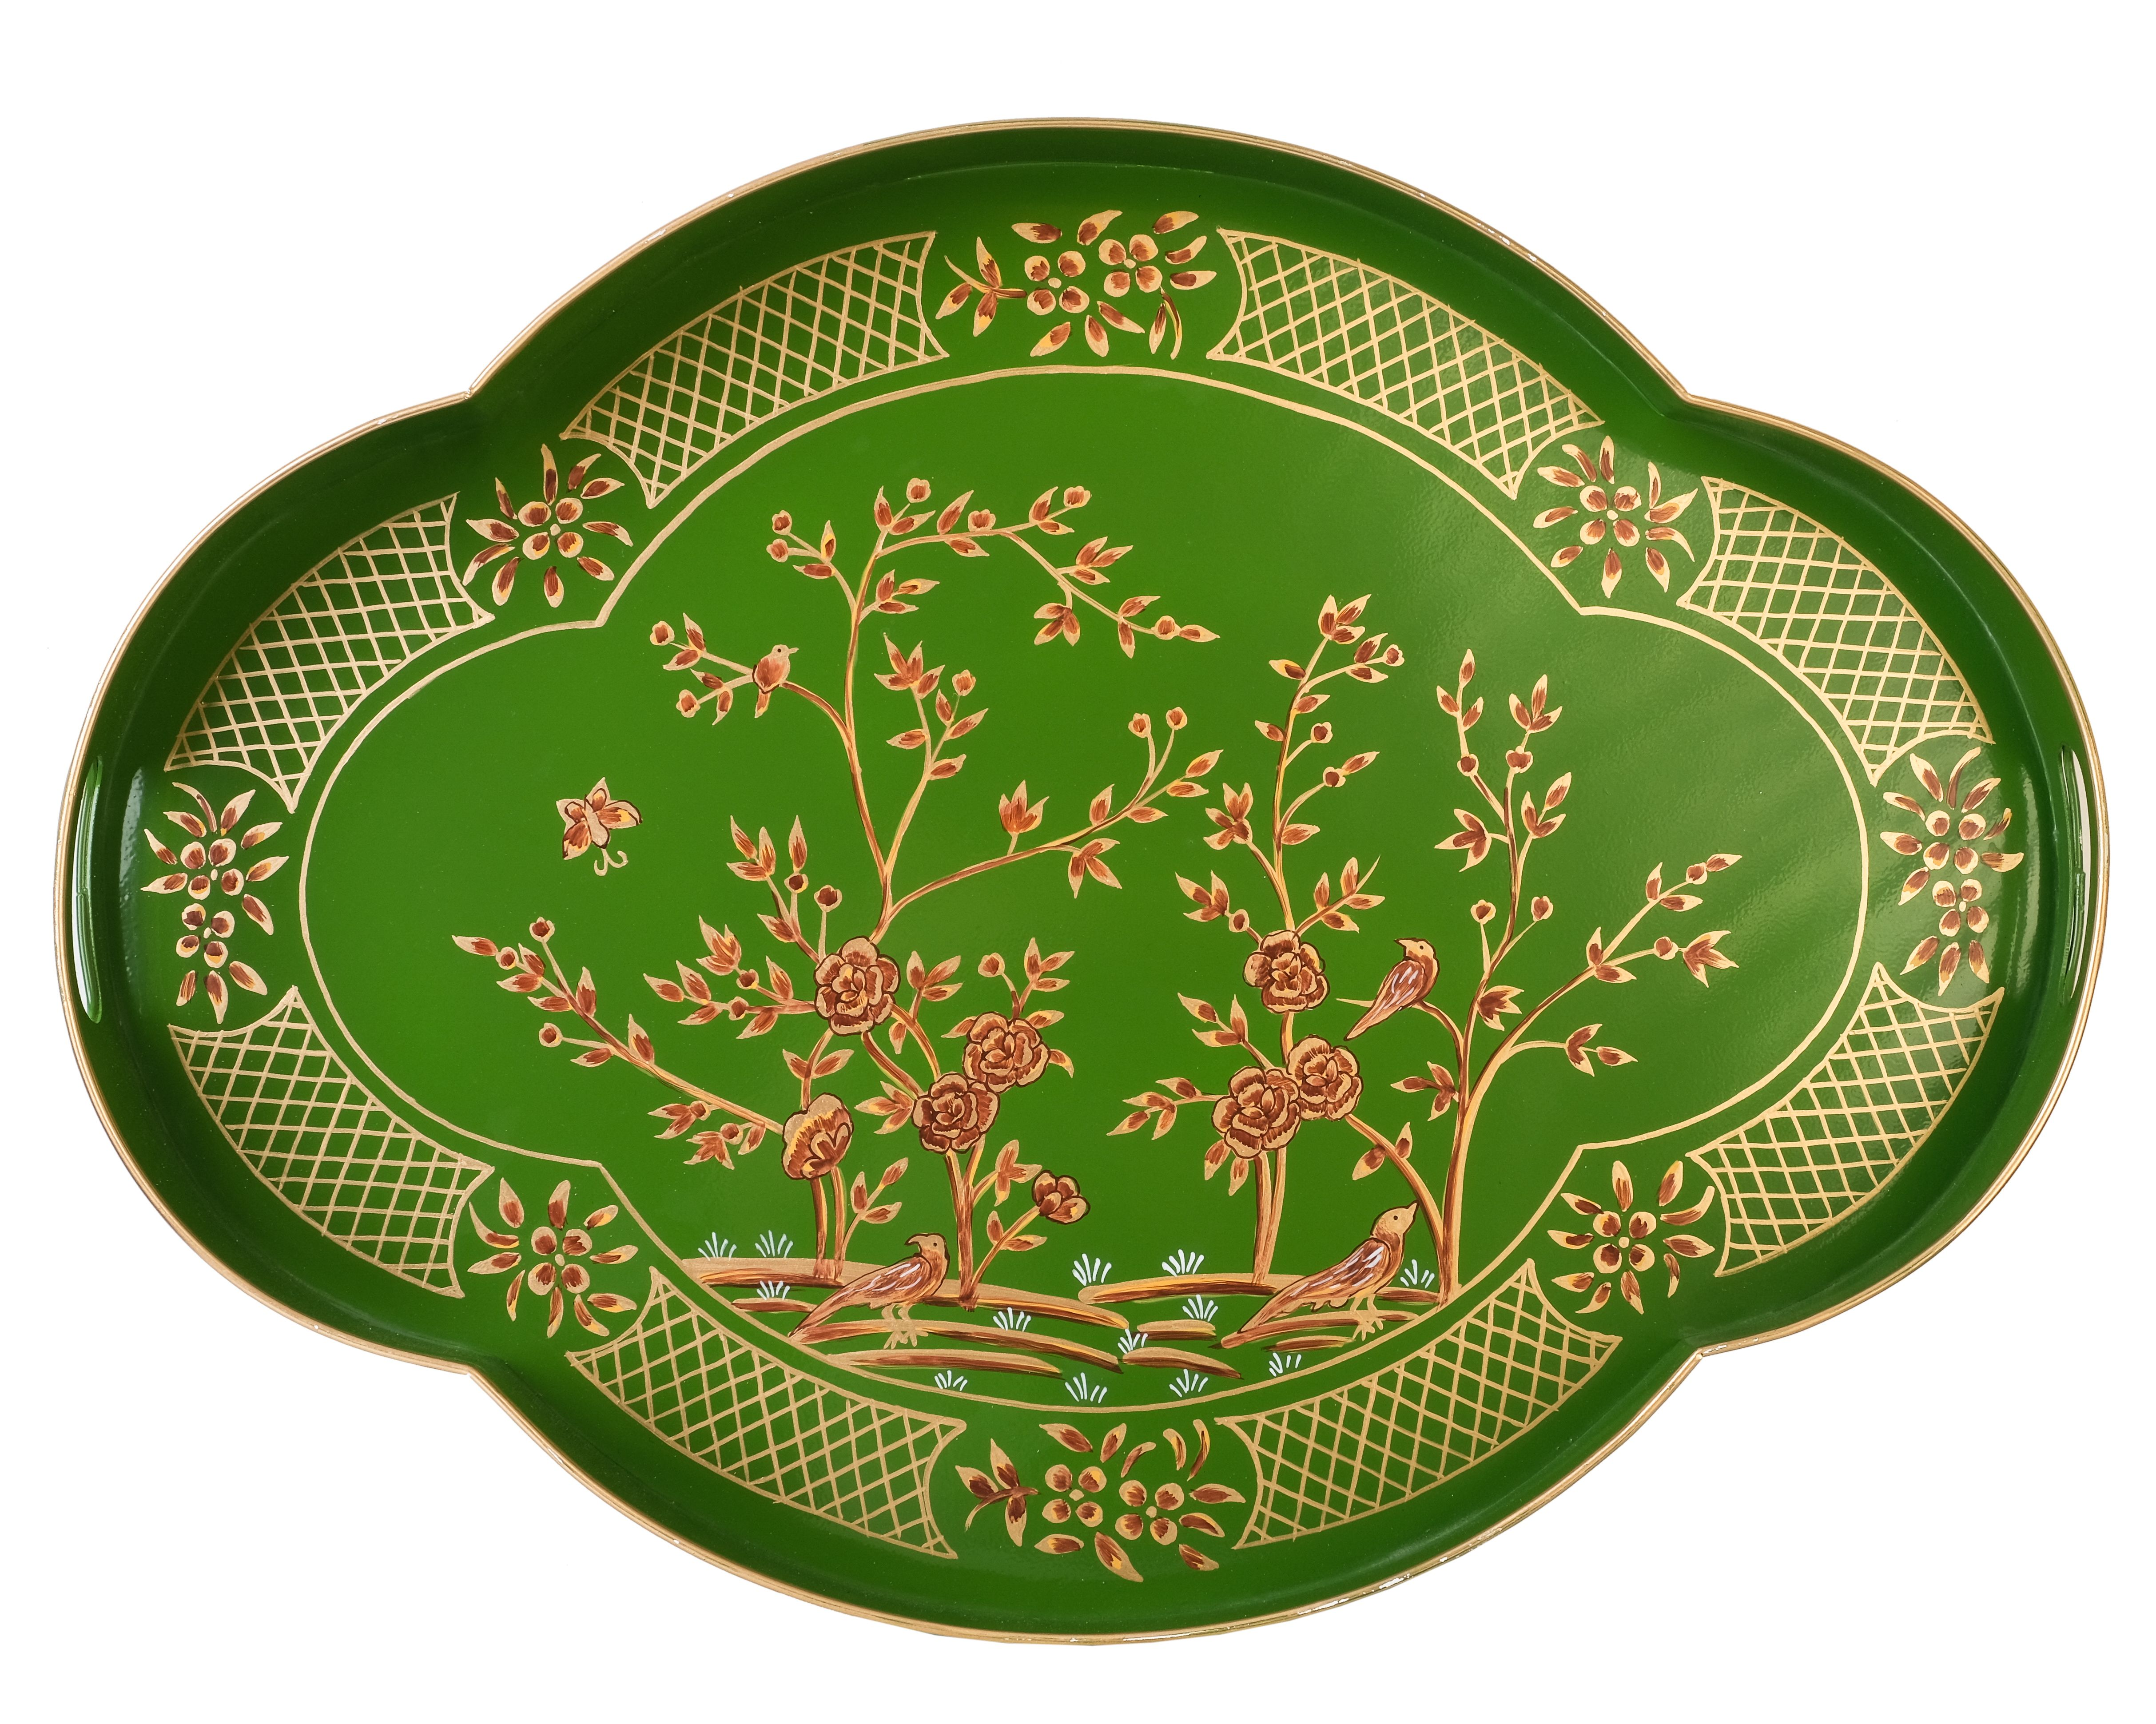 Incredible chinoiserie  mossy green/gold scalloped tray